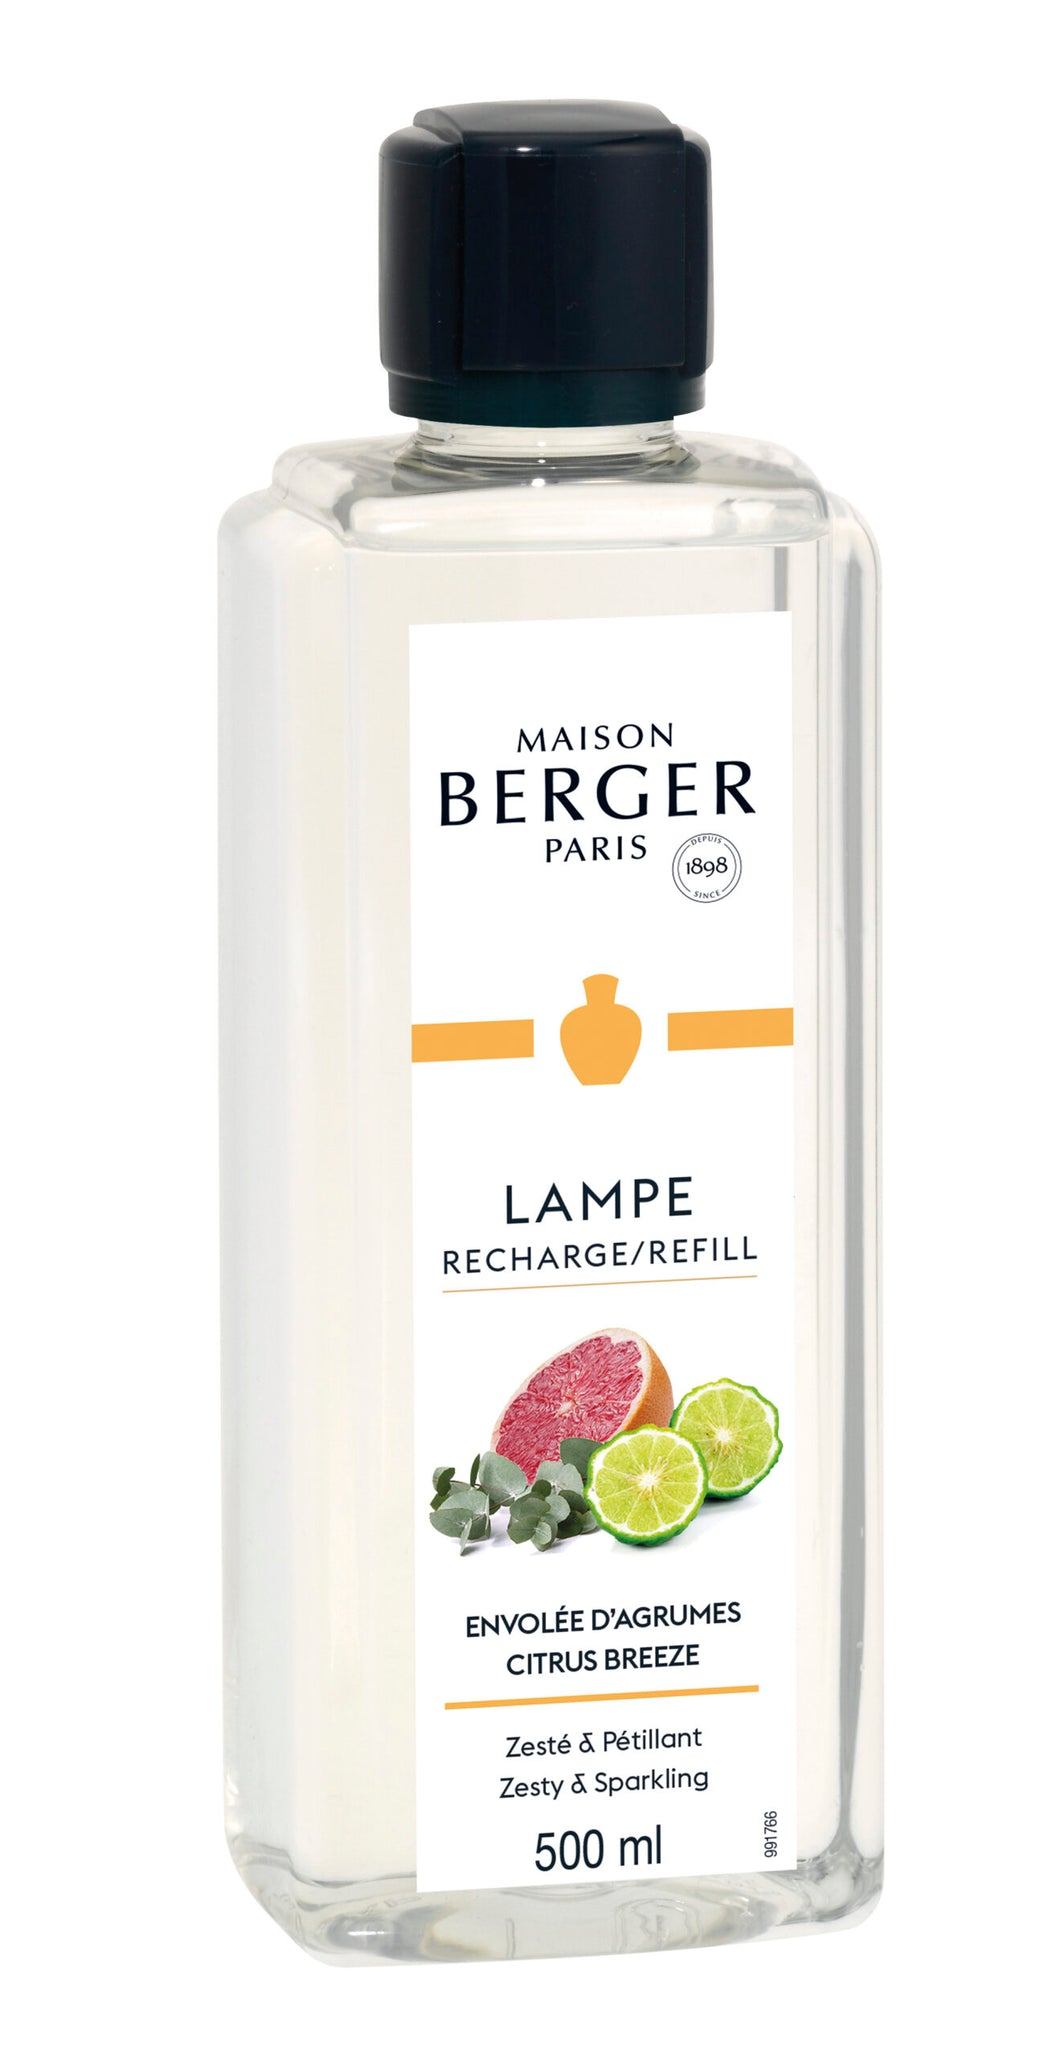 Maison Berger Envolée d'Agrumes / Citrus Breeze 500ml